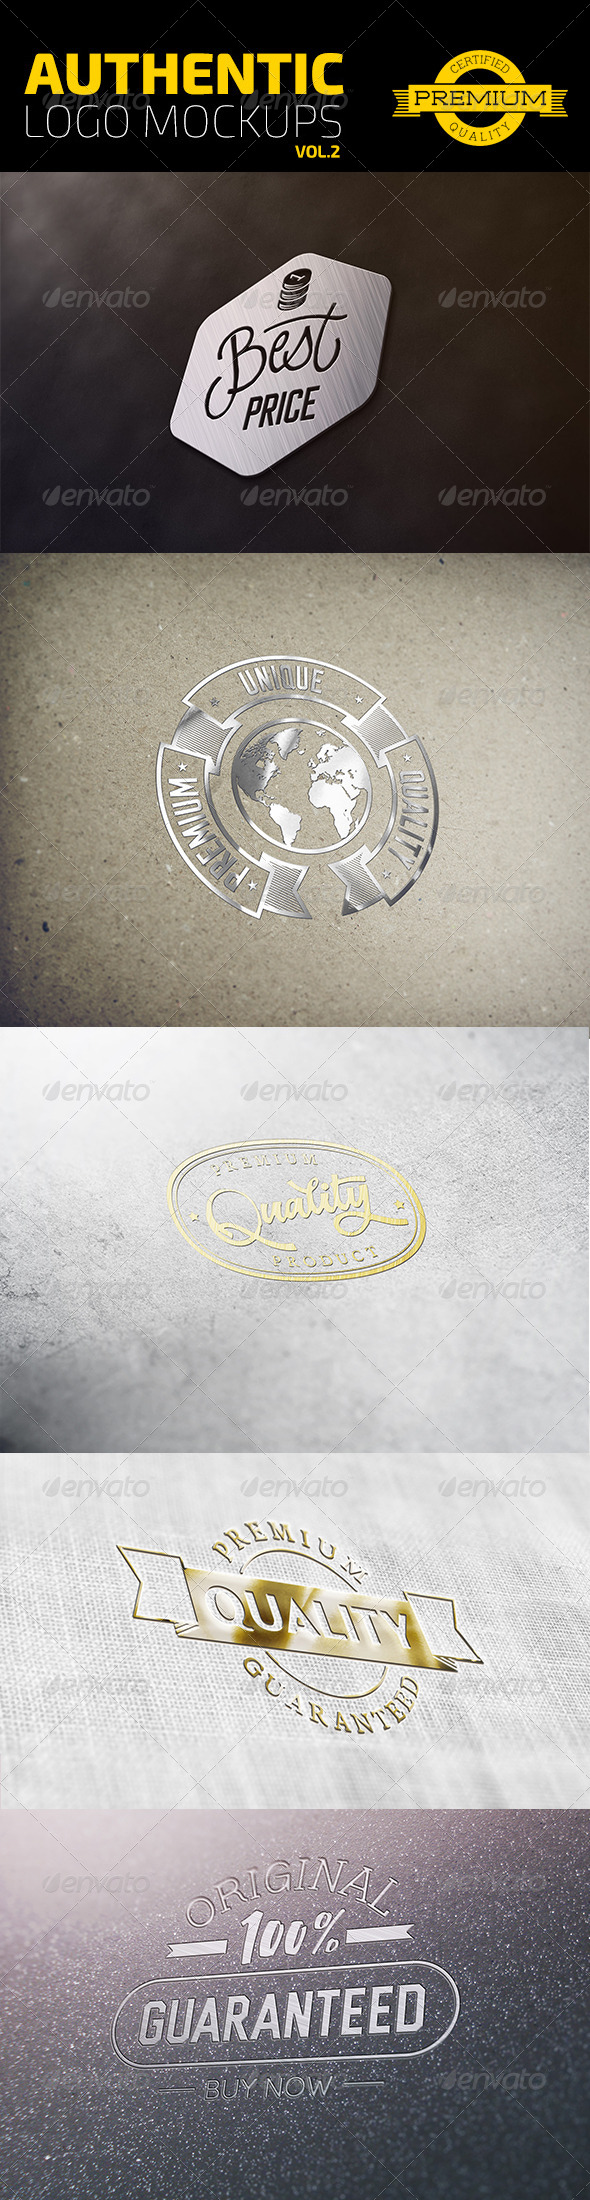 GraphicRiver Authentic Logo Mockups Vol 2 6903276